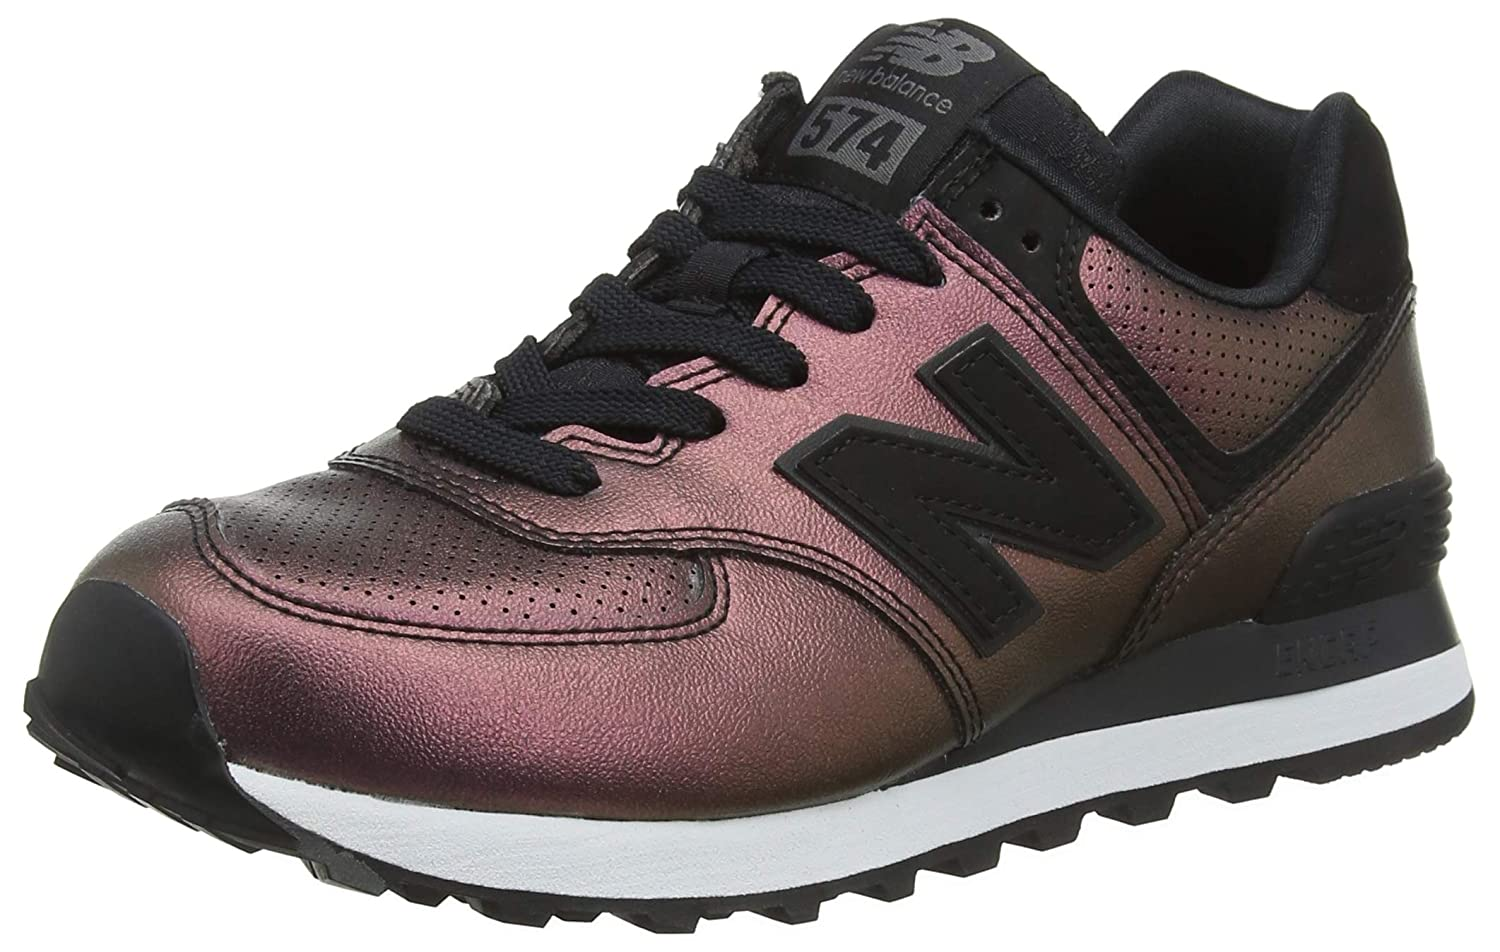 New Balance Wl574, Metallic Bottes Classiques Femme Femme Noir Classiques (Black/Champagne Metallic Nubuck) bf7cf2a - deadsea.space